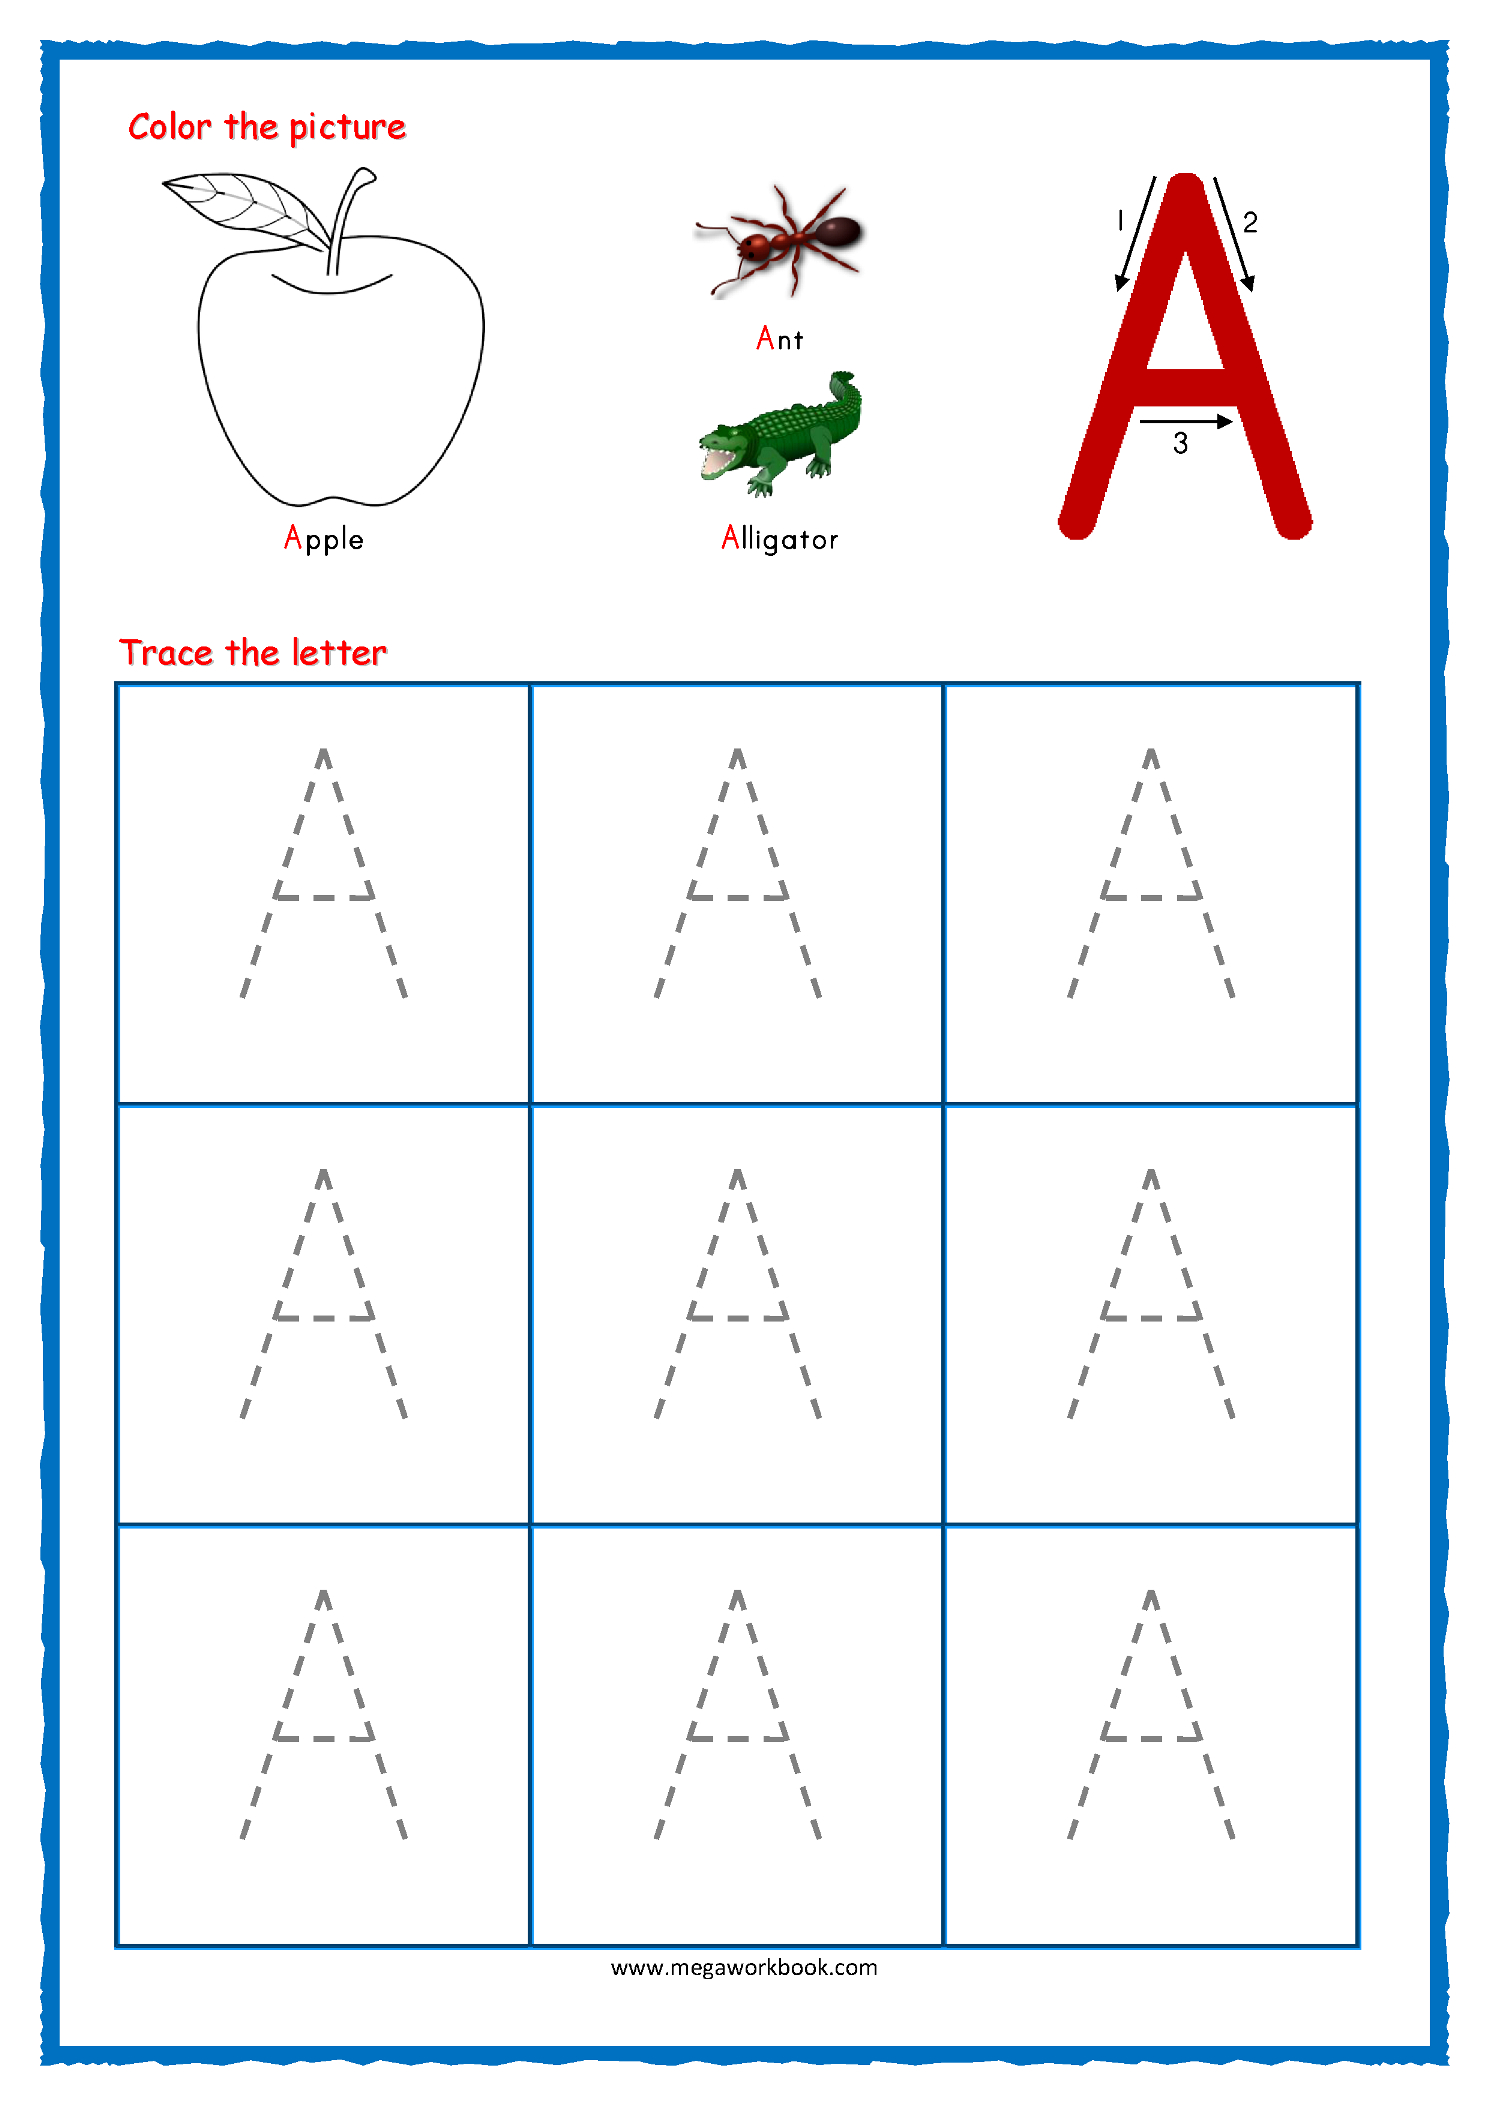 Tracing Letters - Alphabet Tracing - Capital Letters with regard to Preschool Tracing Letters Worksheets Free